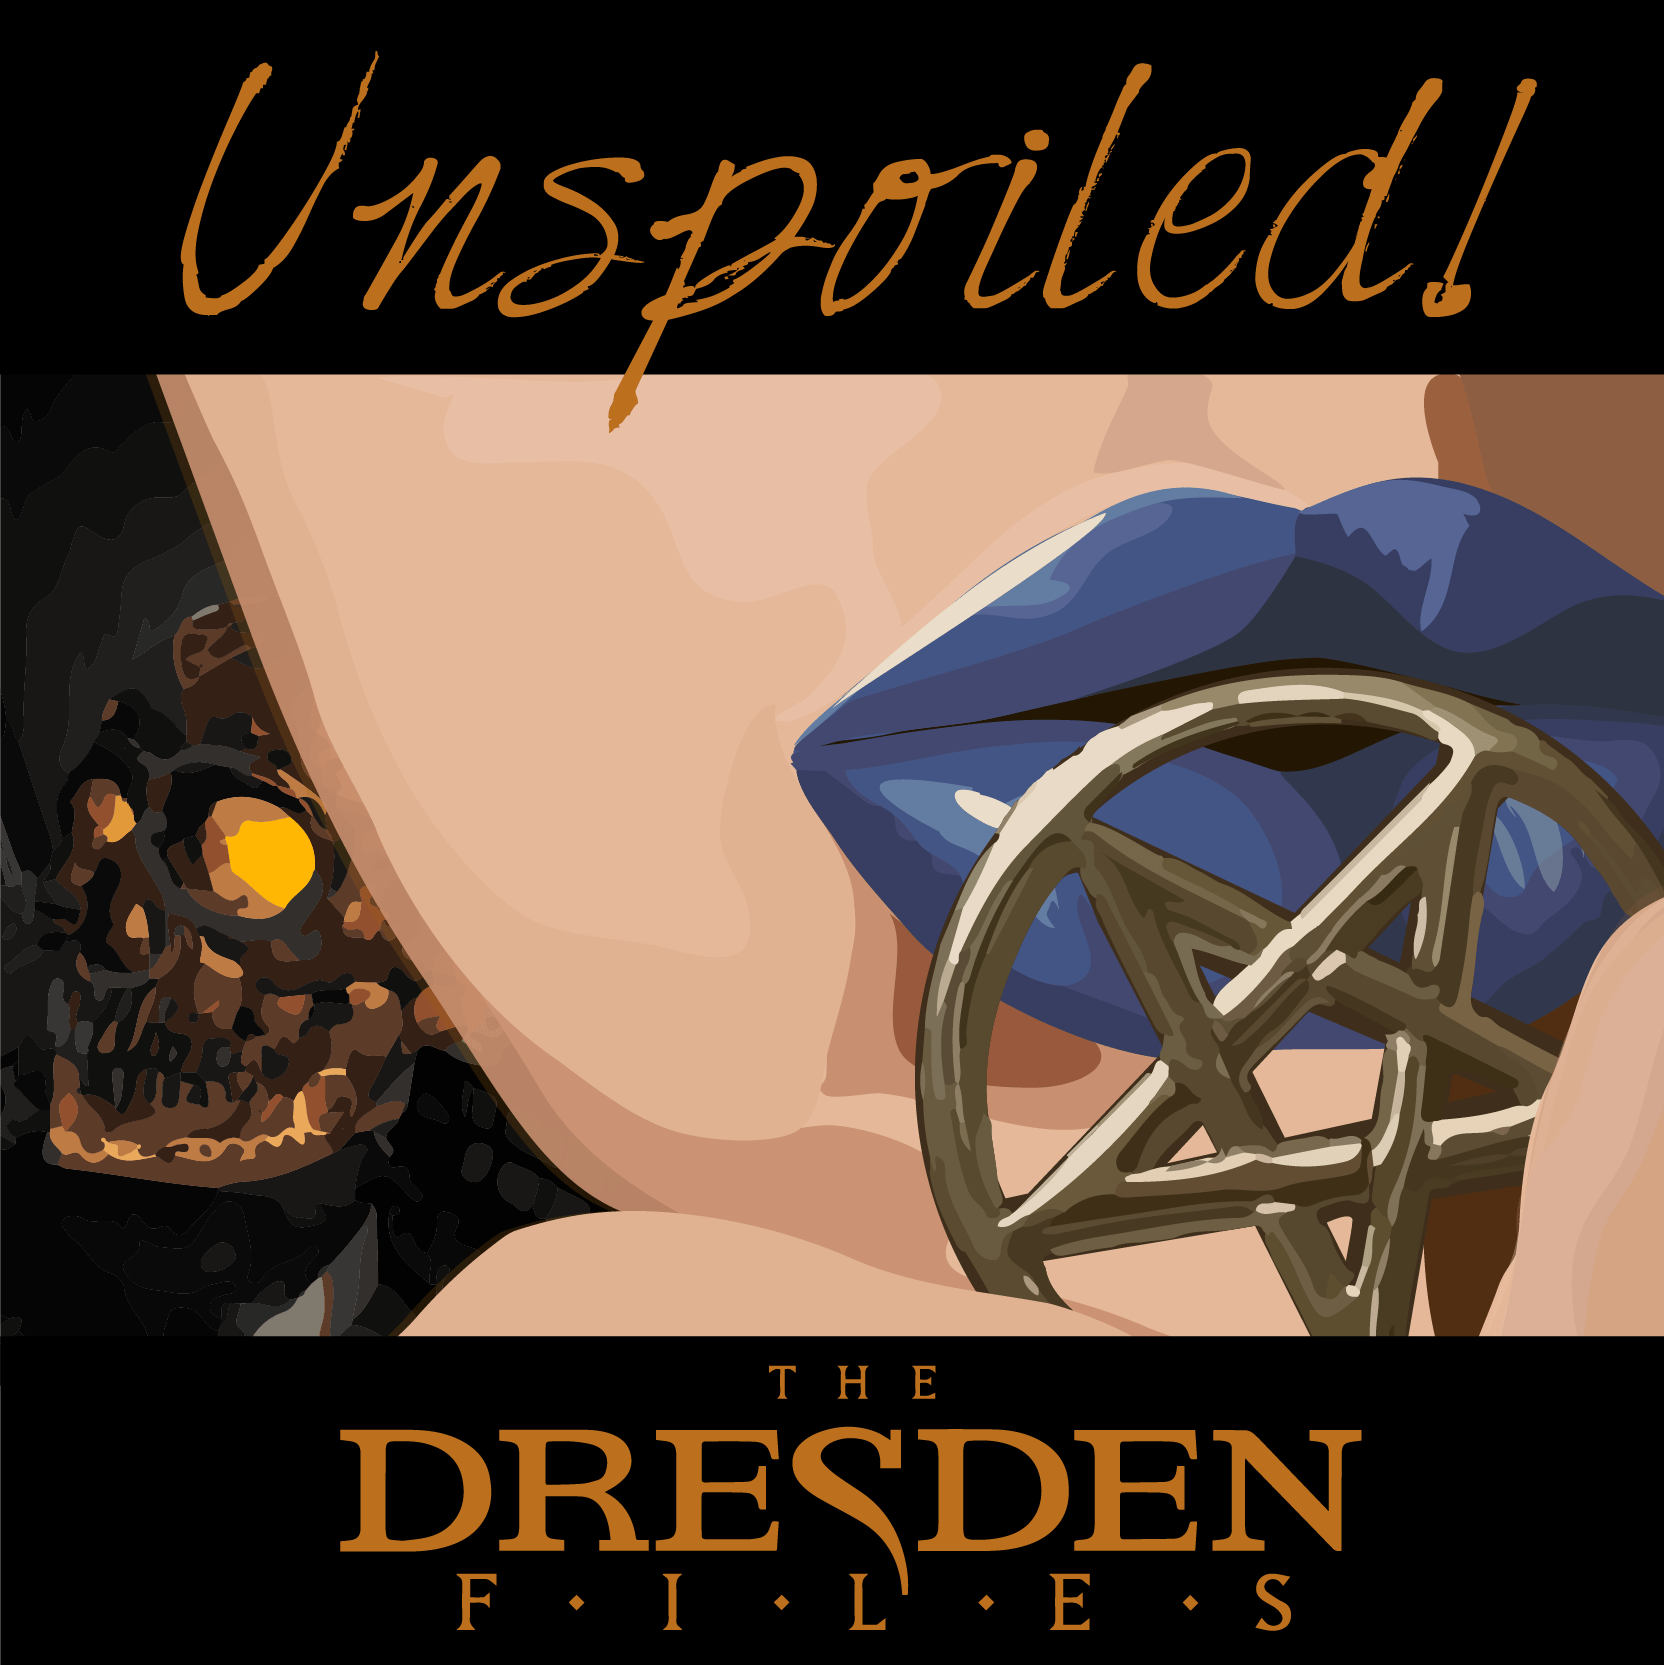 the dresden files unspoiled